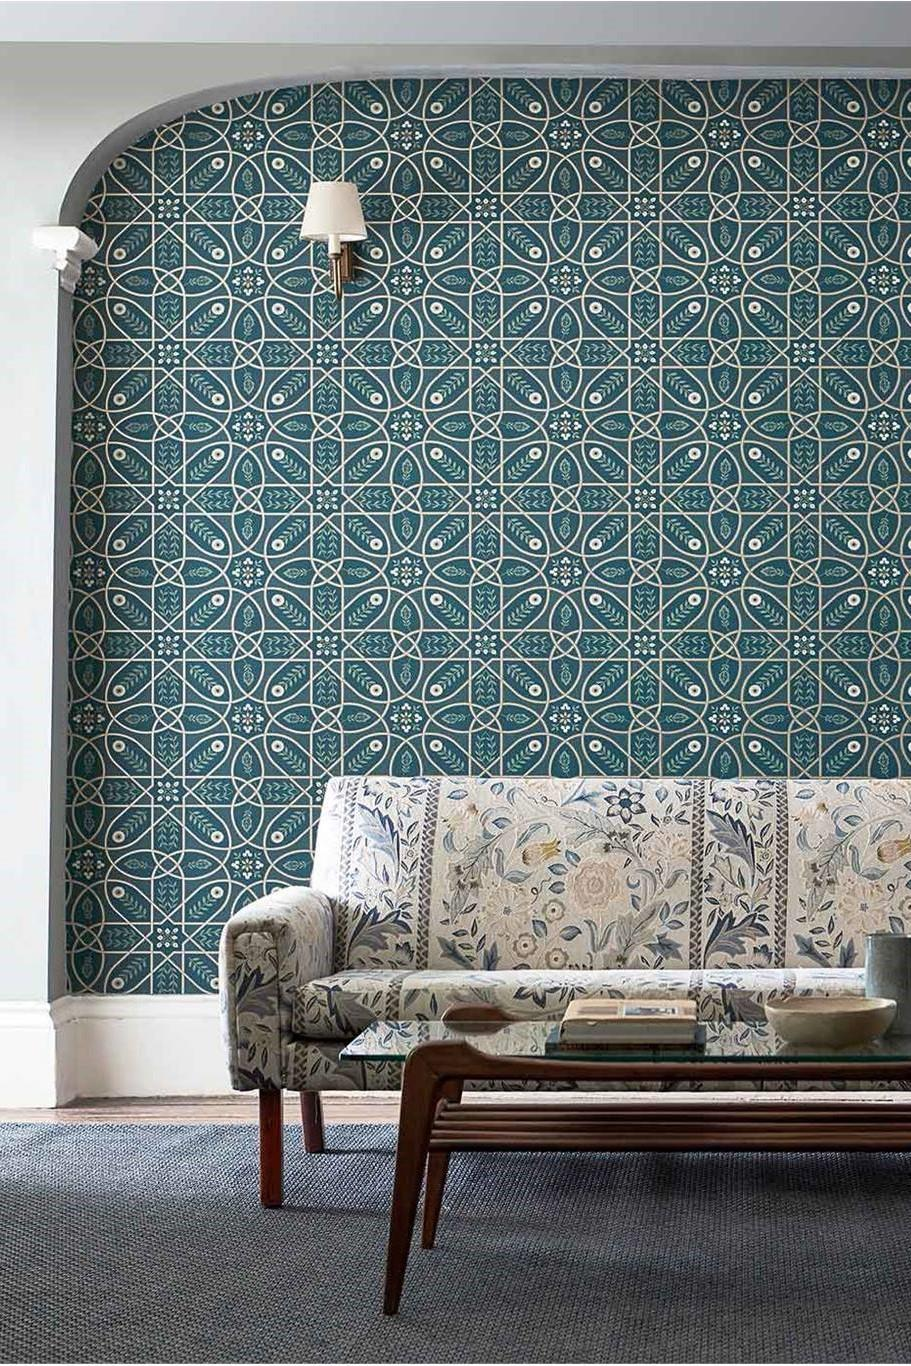 Morris & Co Melsetter Brophy Trellis Wallpaper